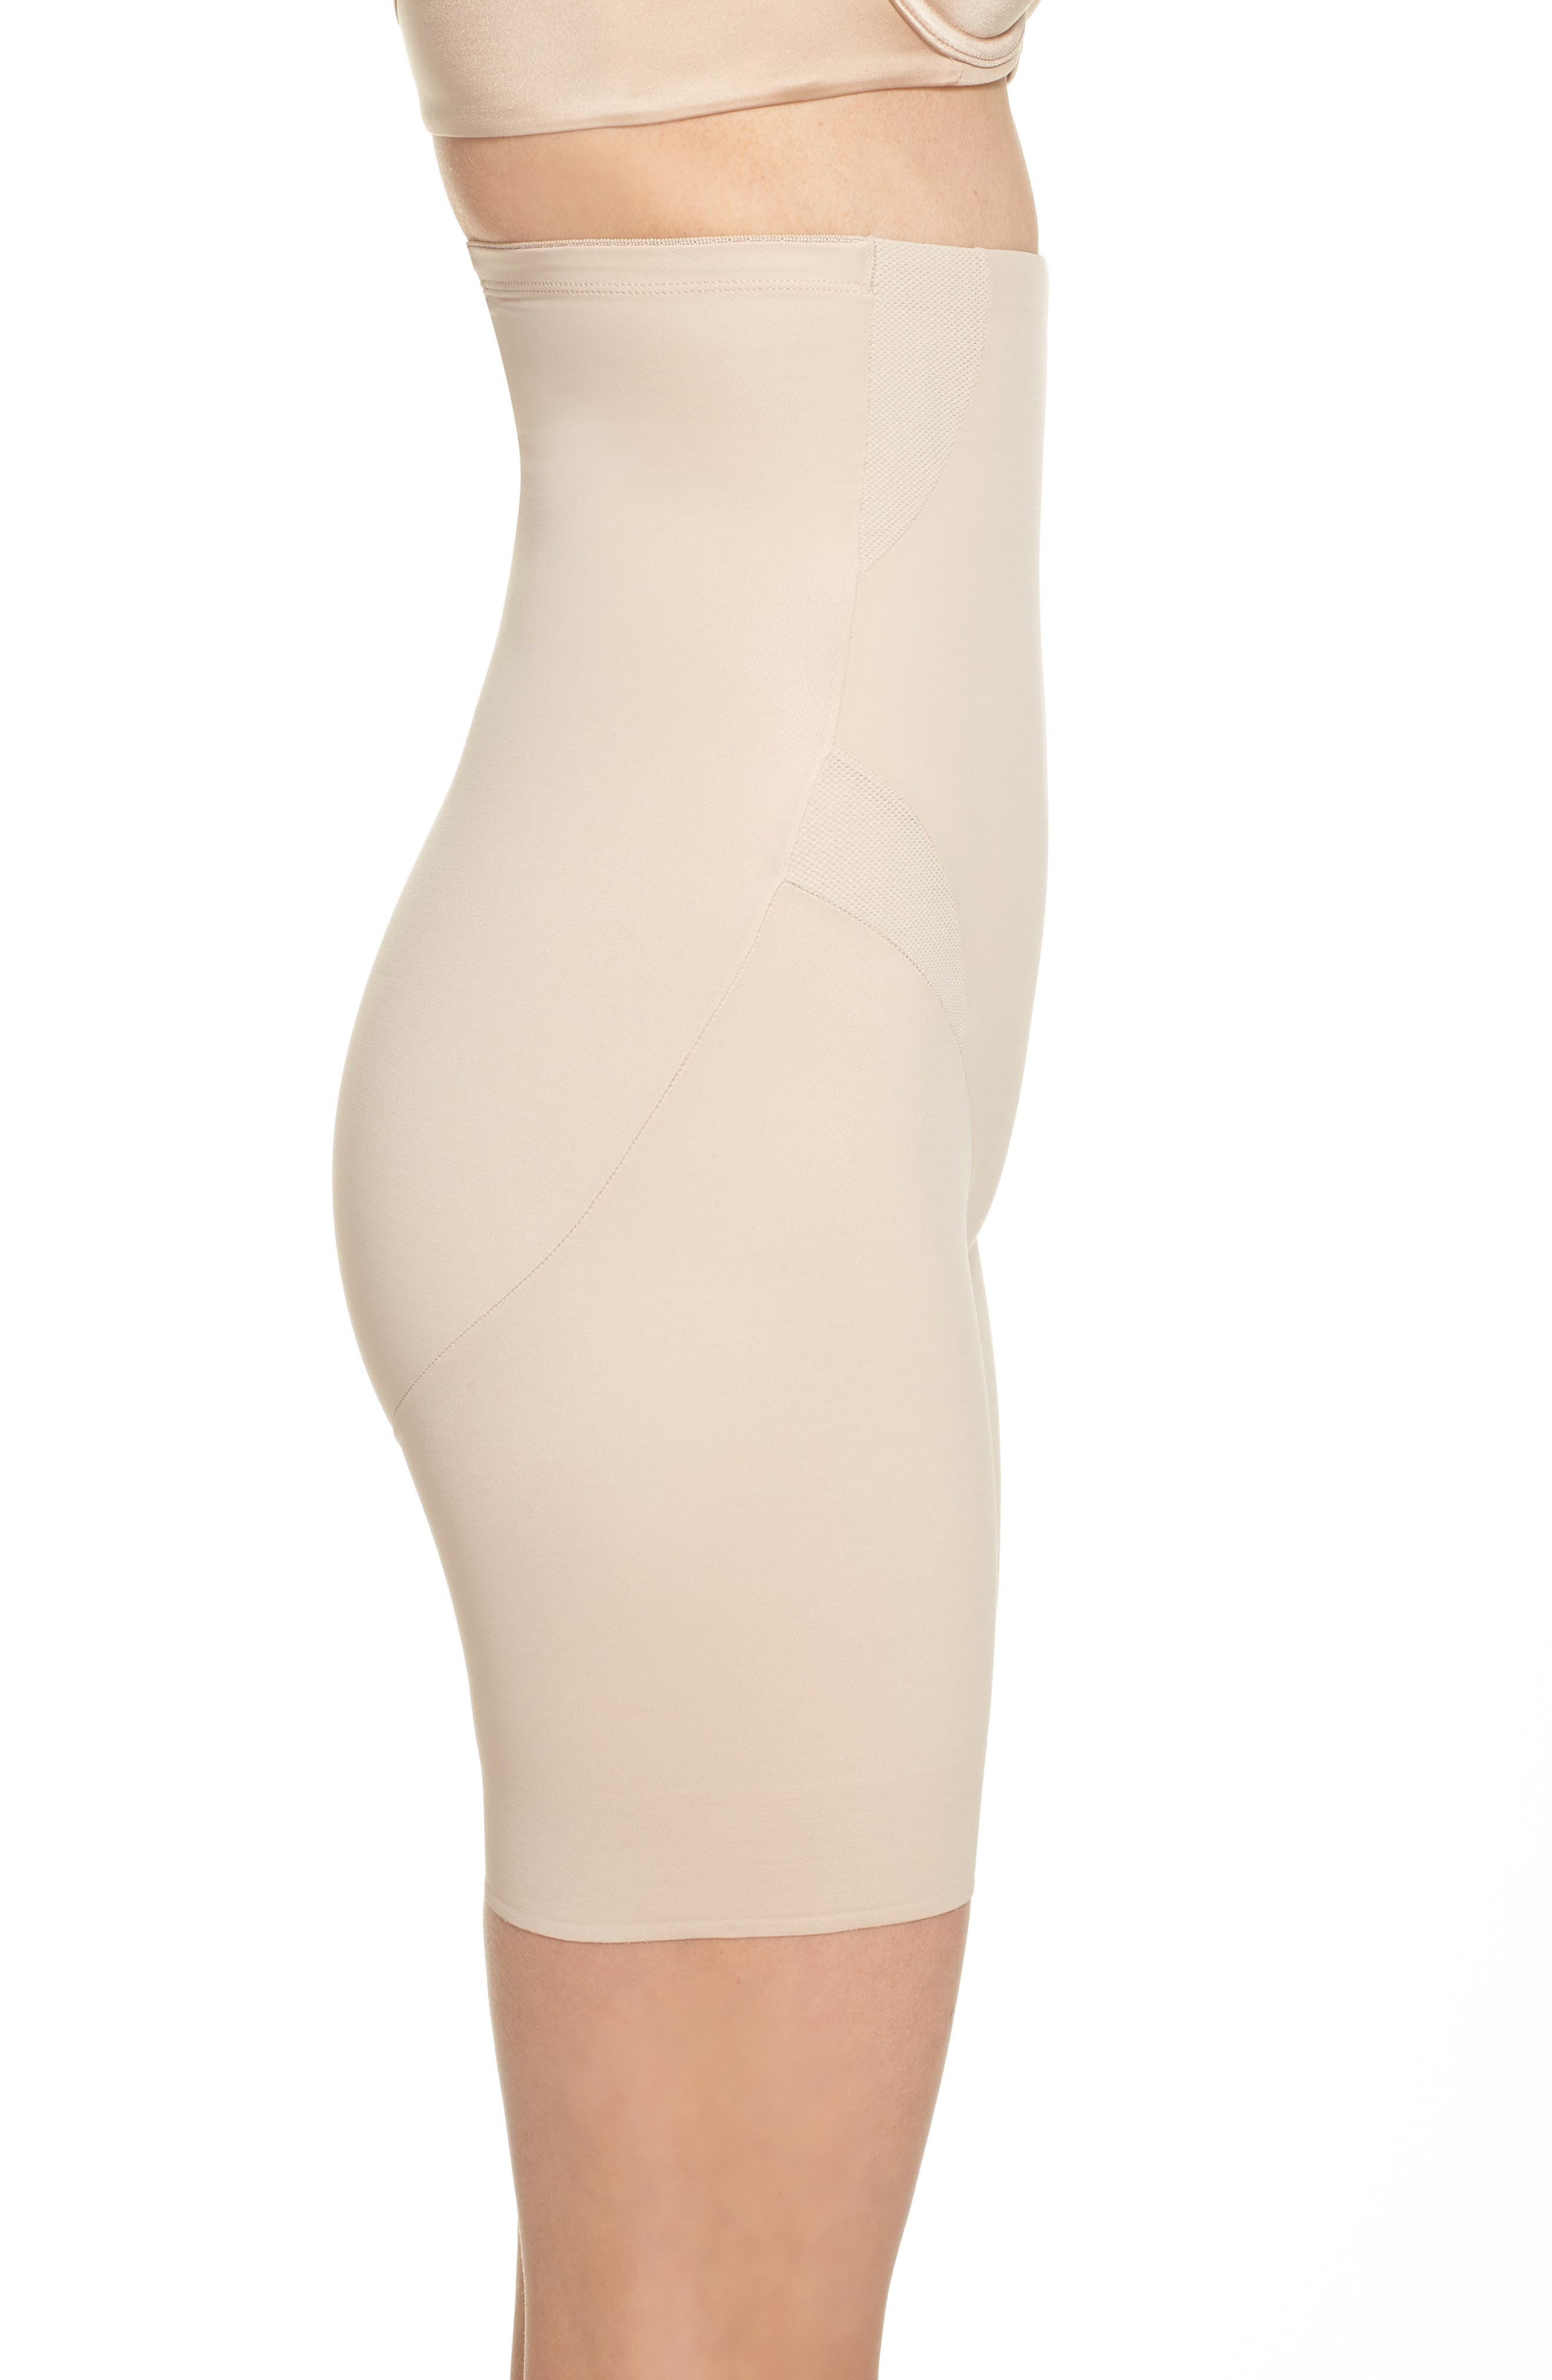 Cooling High Waist Shaping Boyshorts,                             Alternate thumbnail 3, color,                             Nude